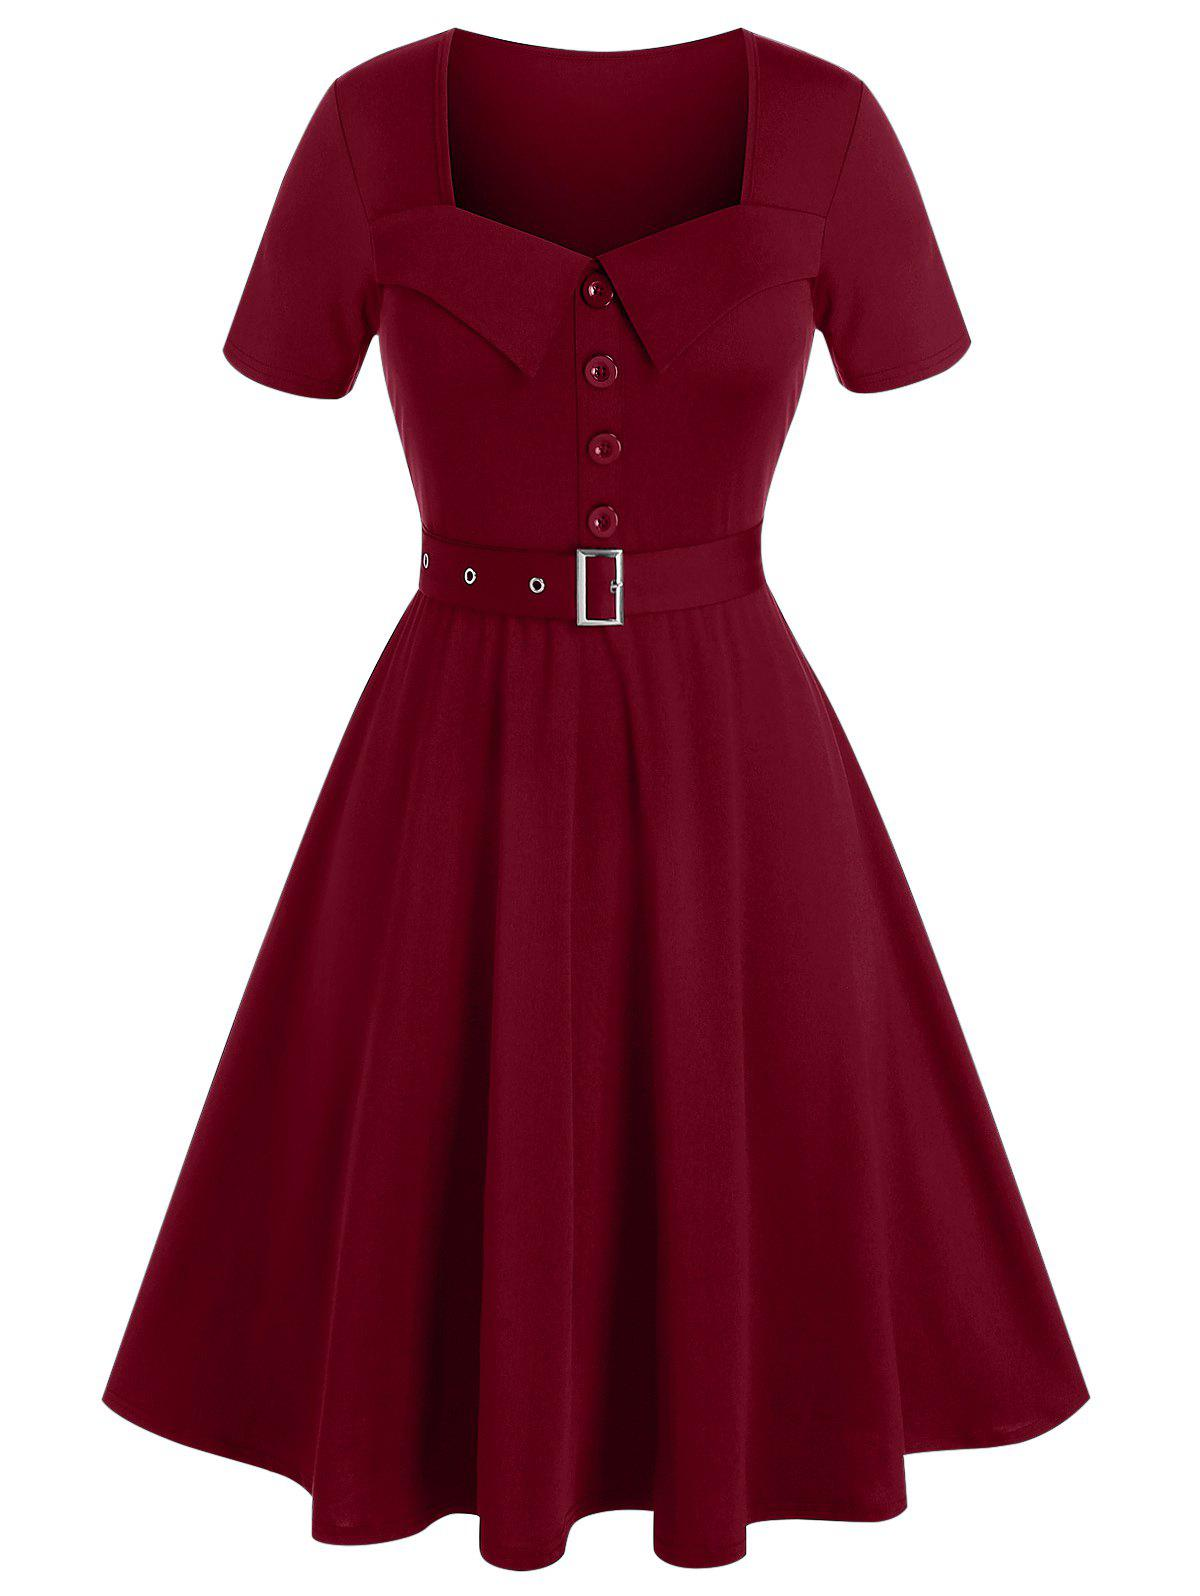 Plus Size Square Neck A Line Belted Retro Dress - RED WINE 2X